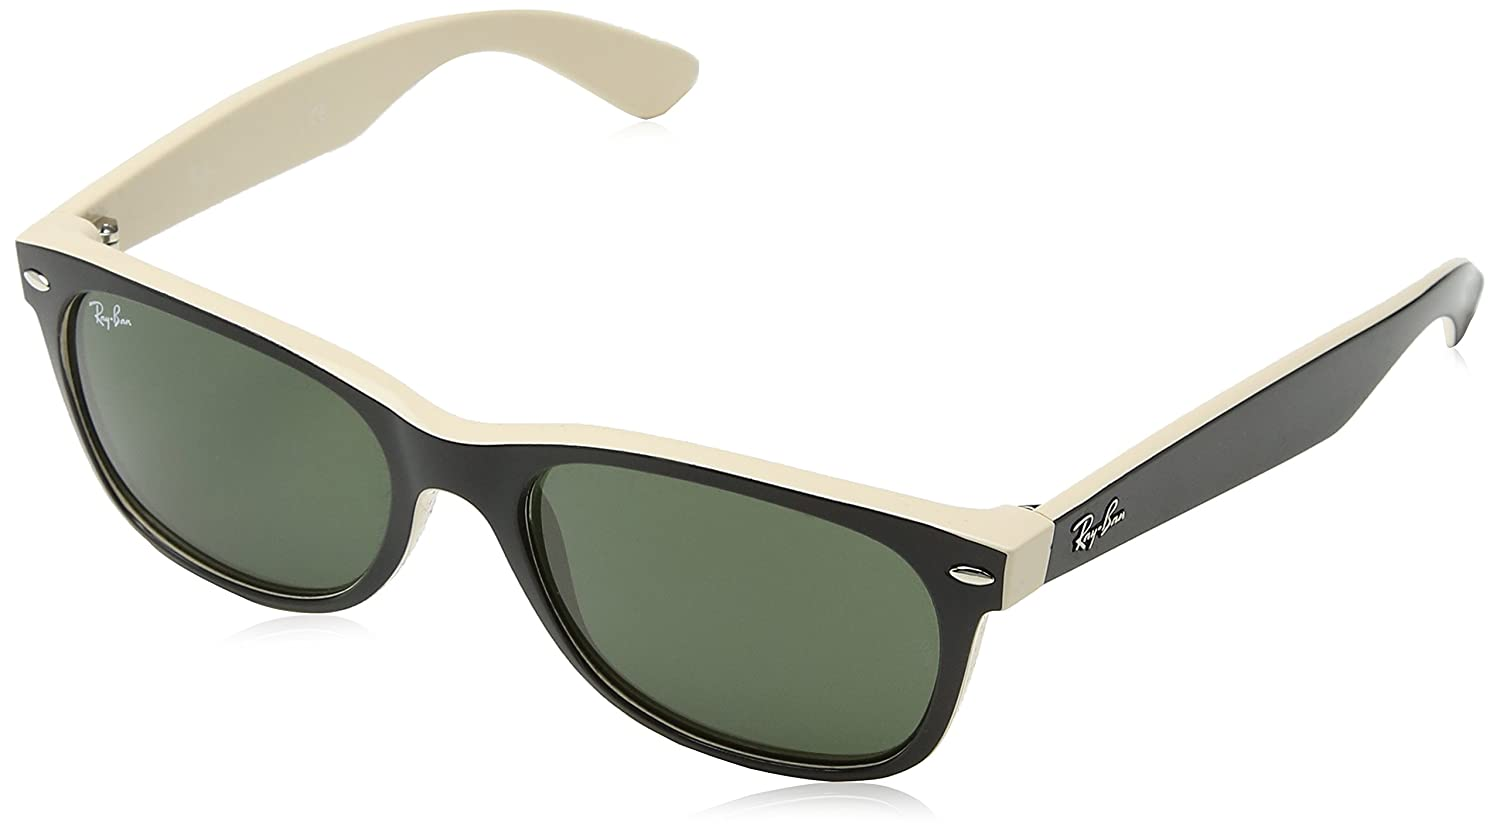 29a7f26216 Amazon.com  Ray-Ban New Wayfarer RB2132 Sunglasses-875 Black On  Beige Crystal Green-55mm  Ray-Ban  Clothing